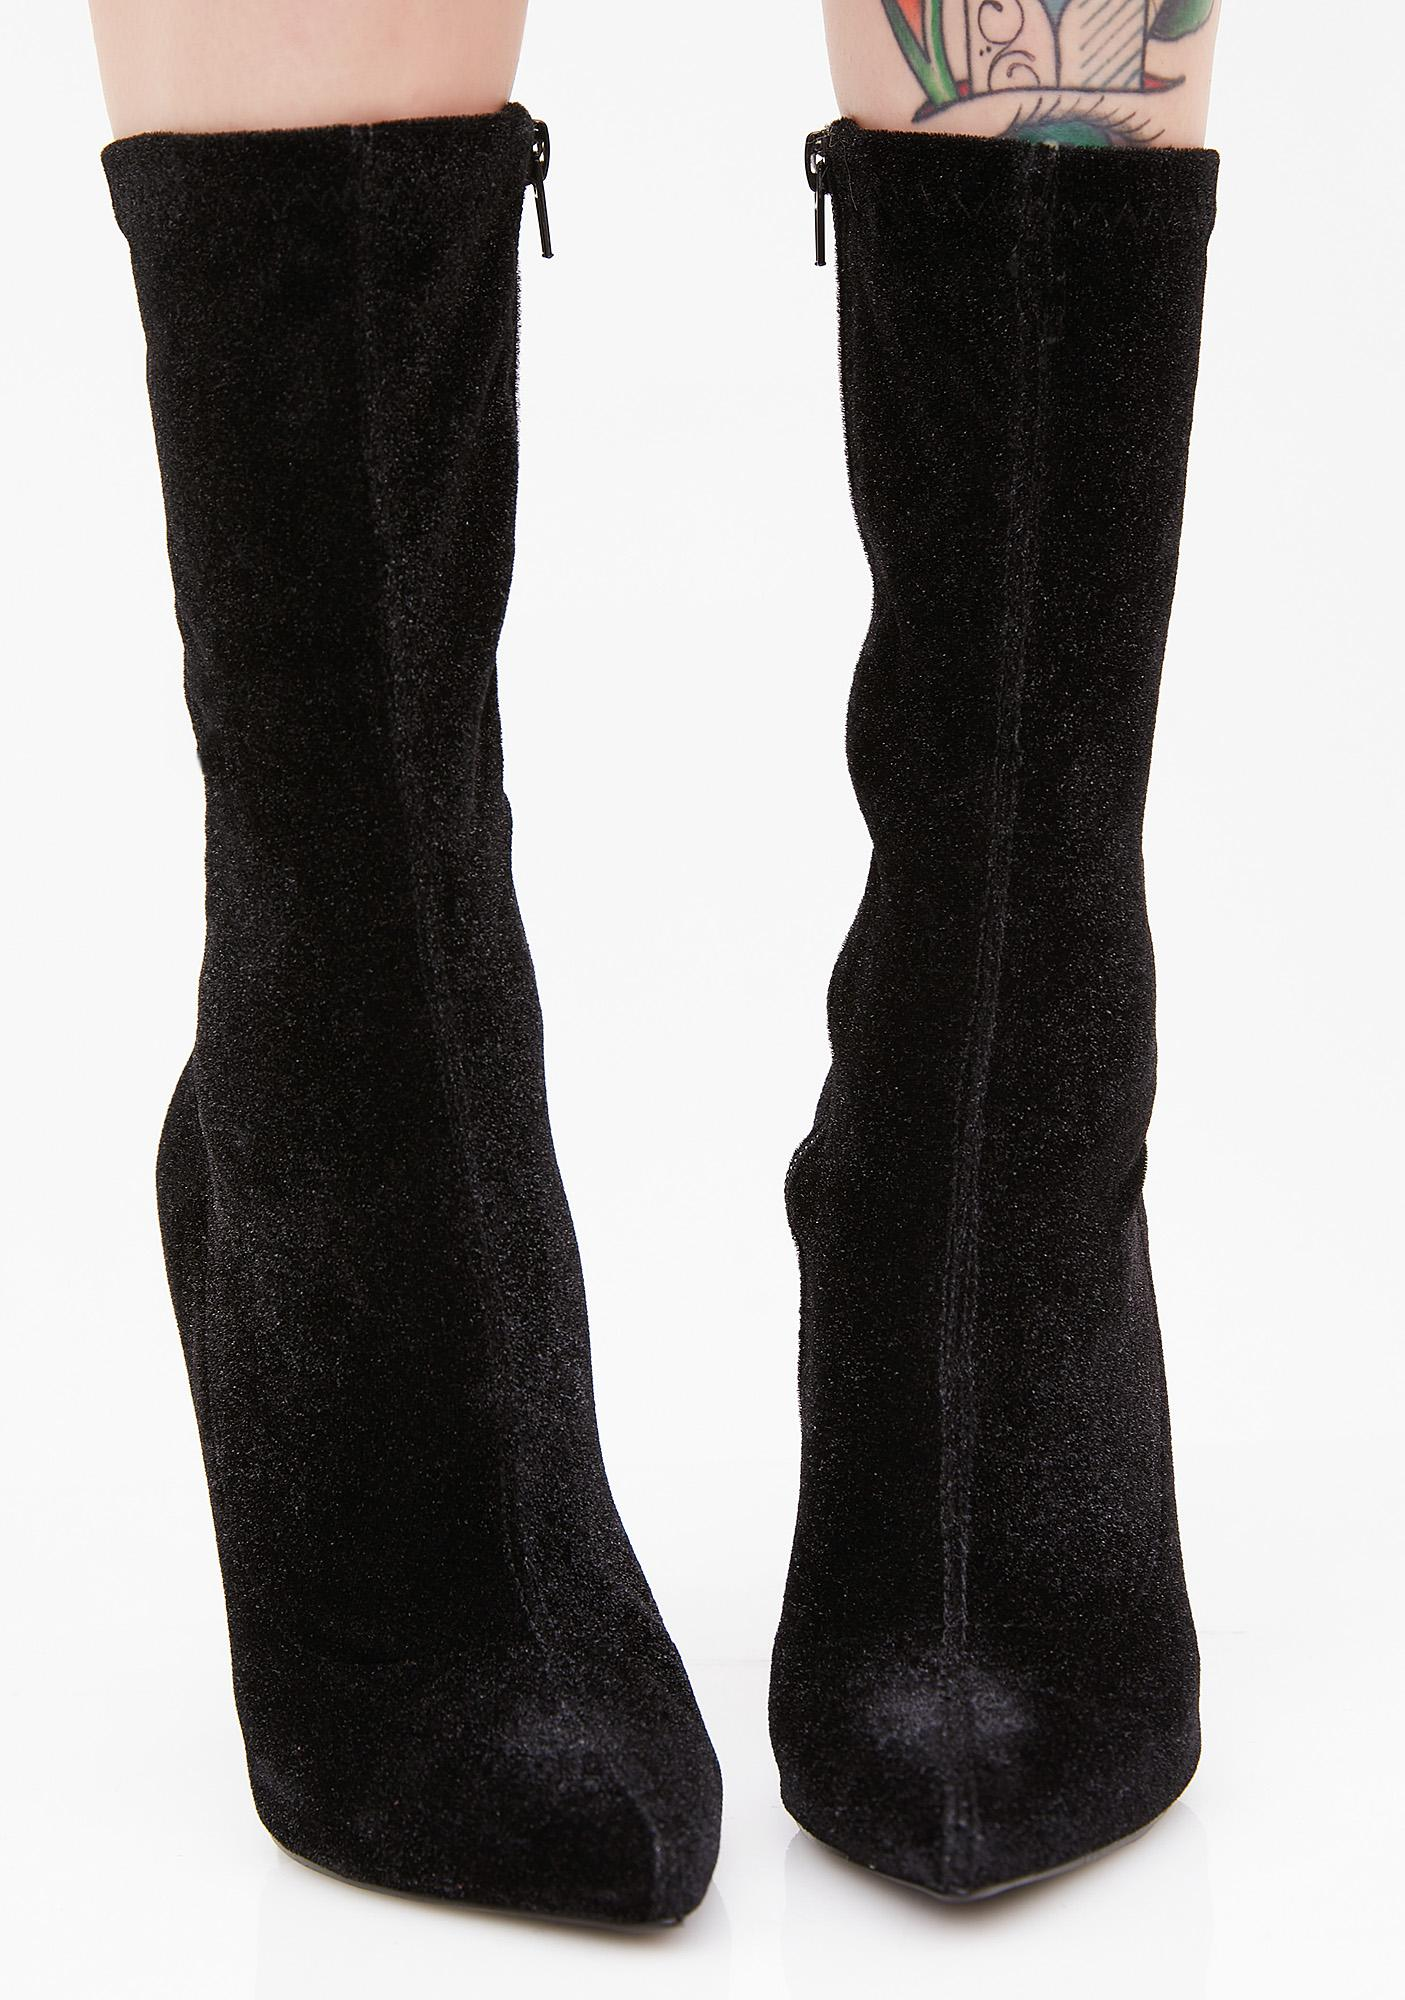 Darkwave Duchess Heeled Boots